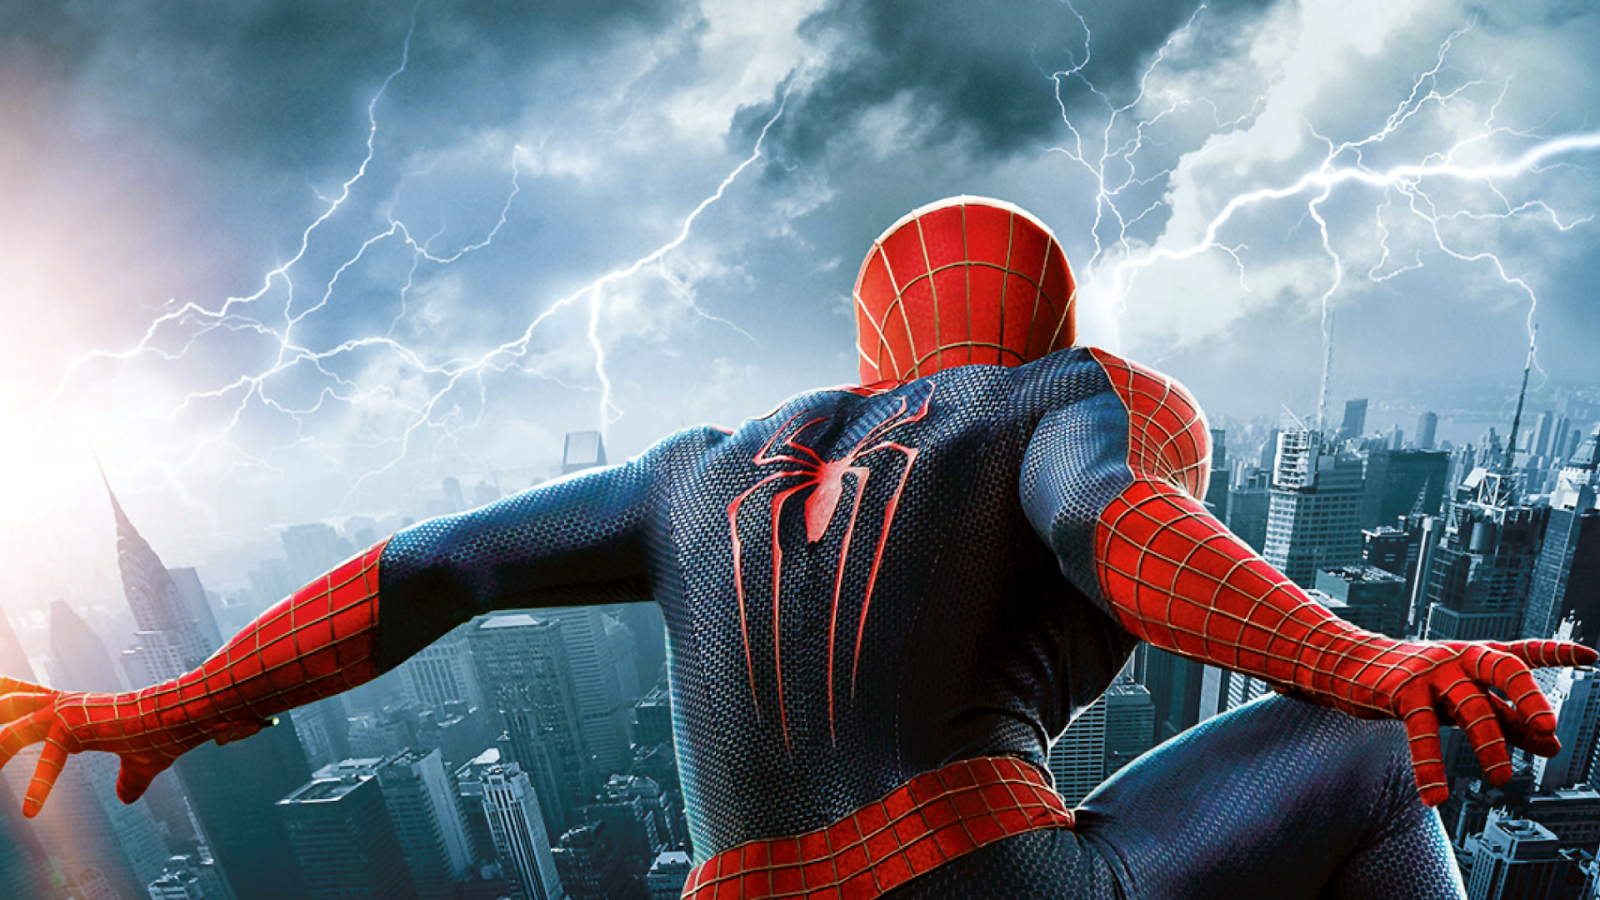 The Amazing Spider Man Wallpapers [HD Facebook Cover Photos